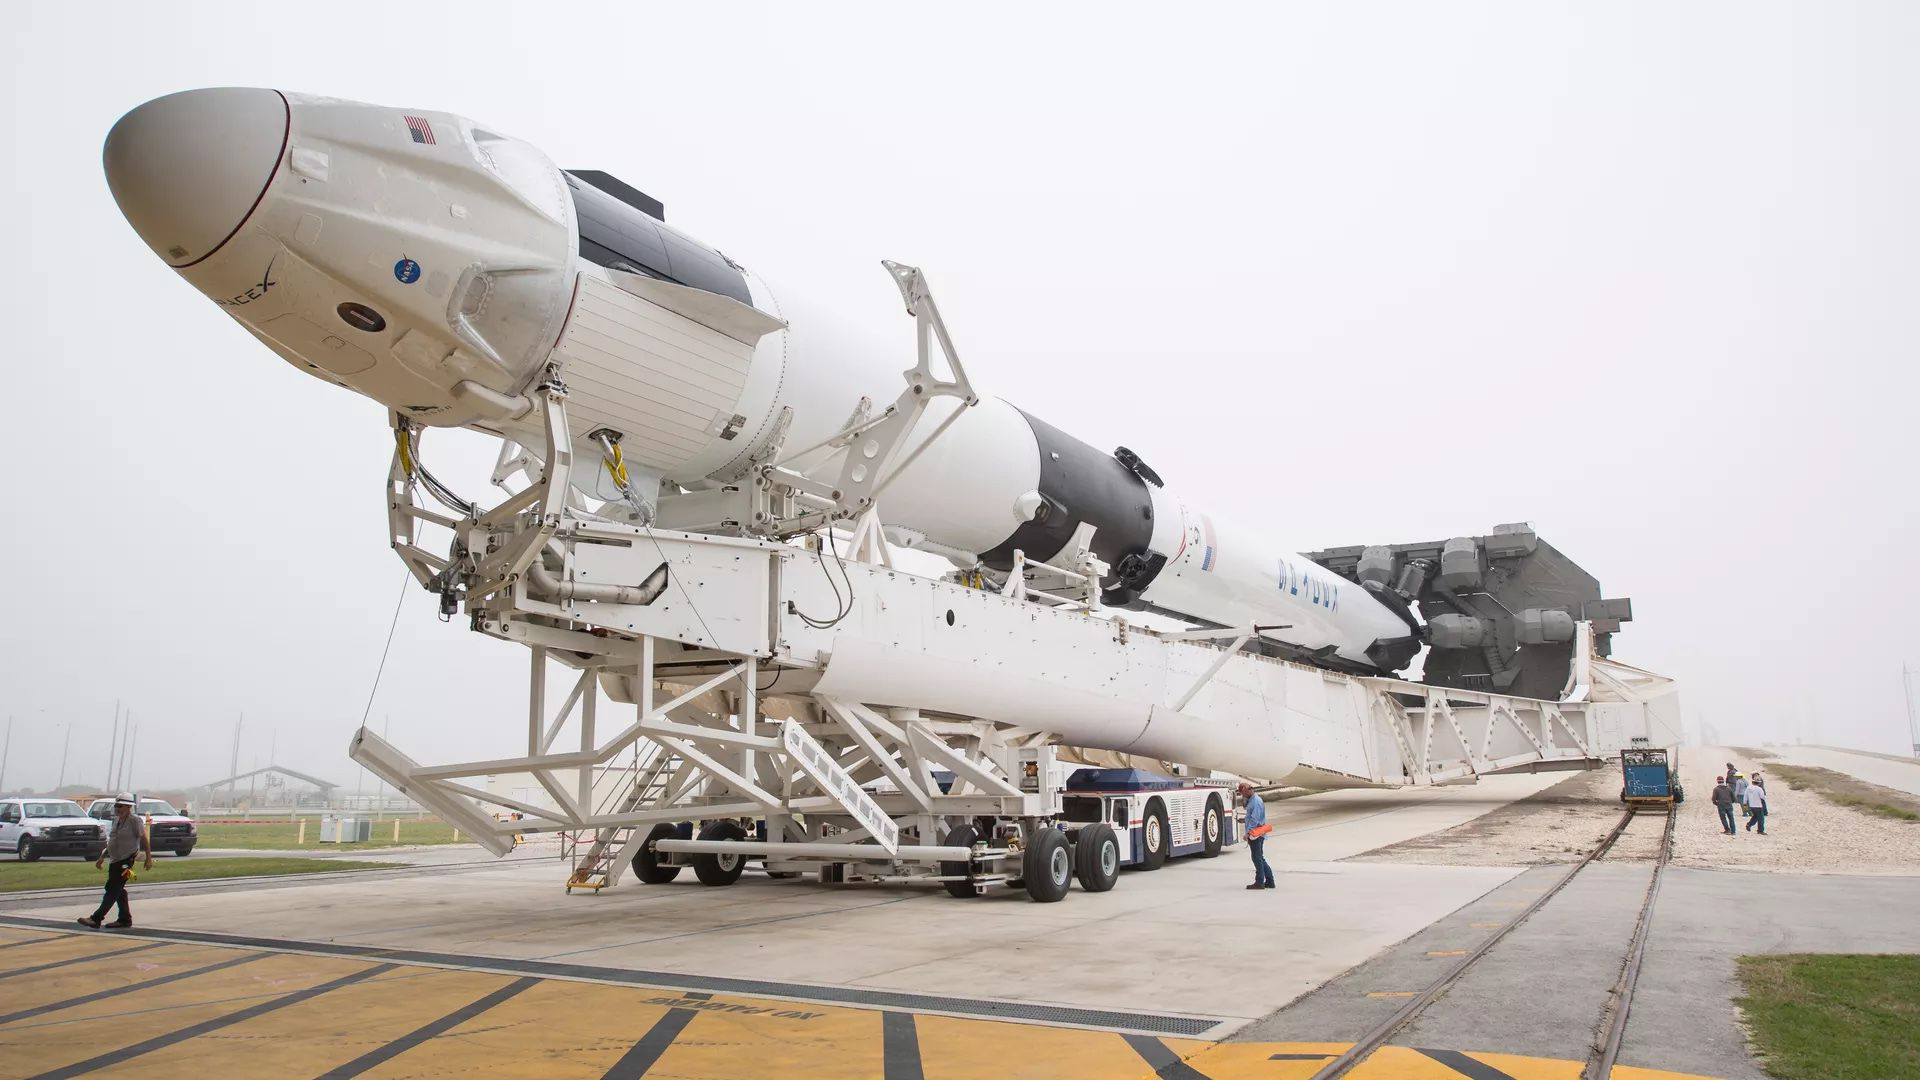 SpaceX Falcon 9 rocket with the Crew Dragon capsule makes its way to the launch pad on Feb. 28.